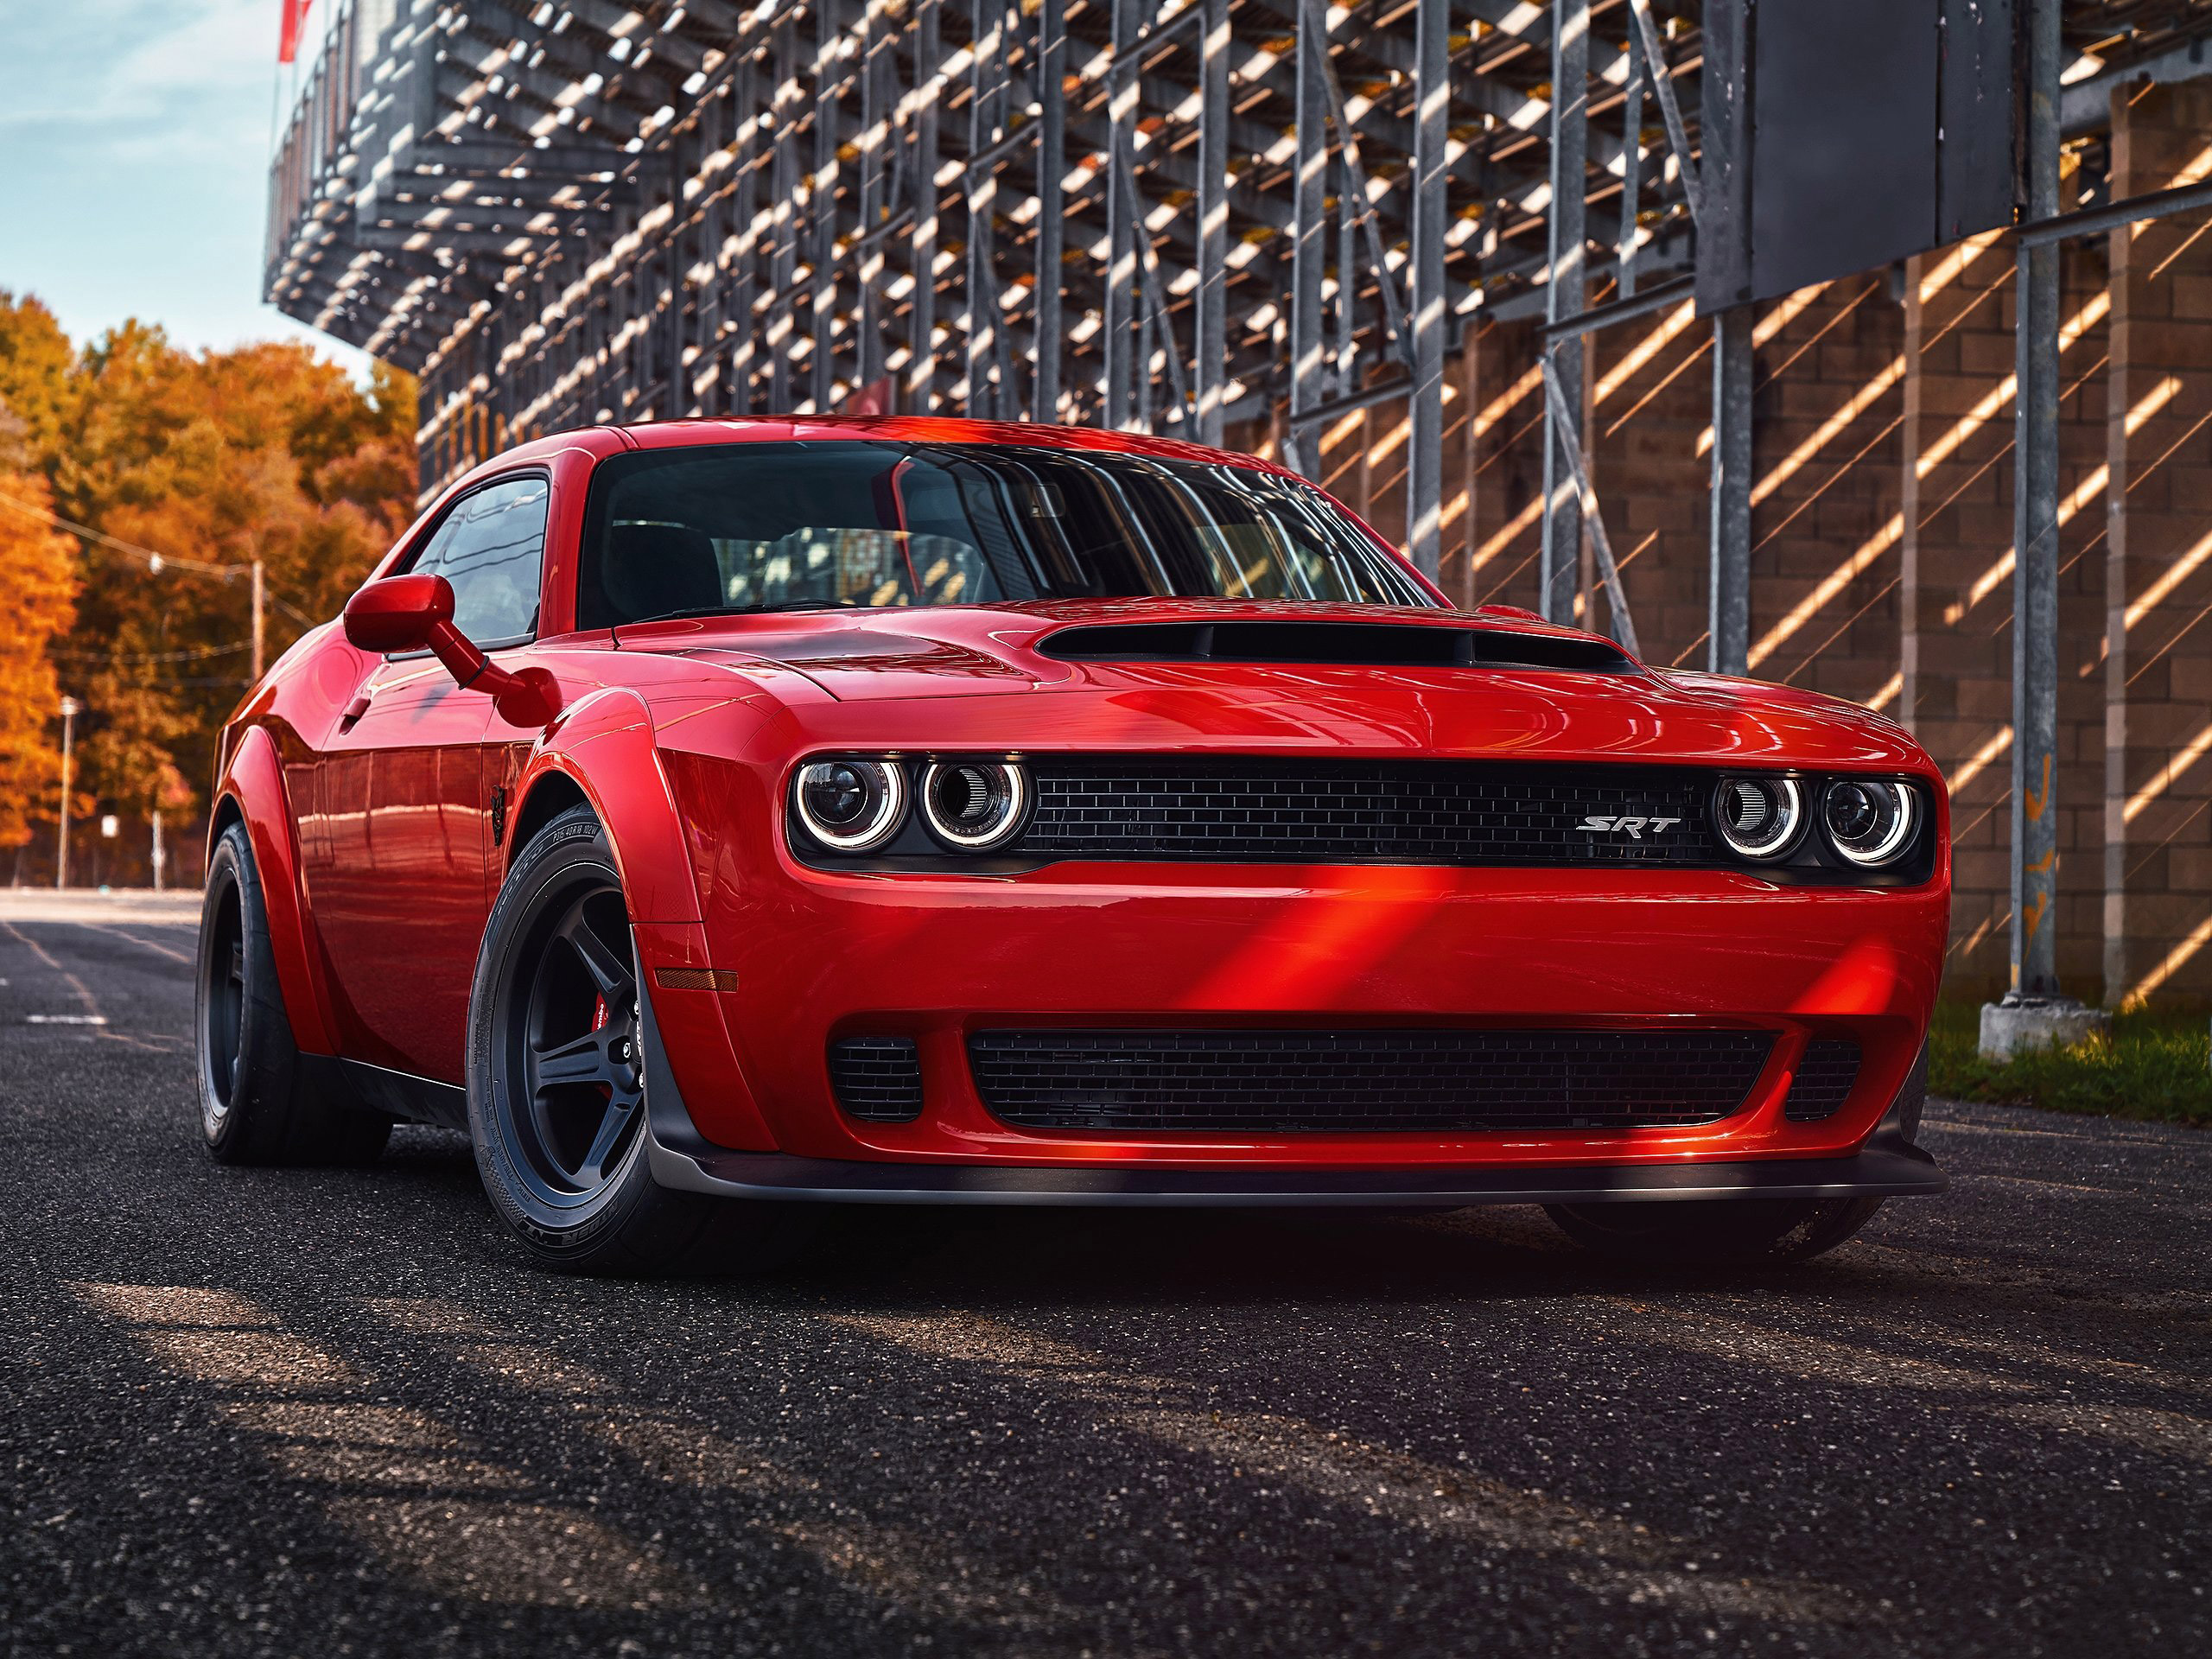 2018 Dodge Challenger SRT Demon, HD Cars, 4k Wallpapers, Images, Backgrounds, Photos and Pictures